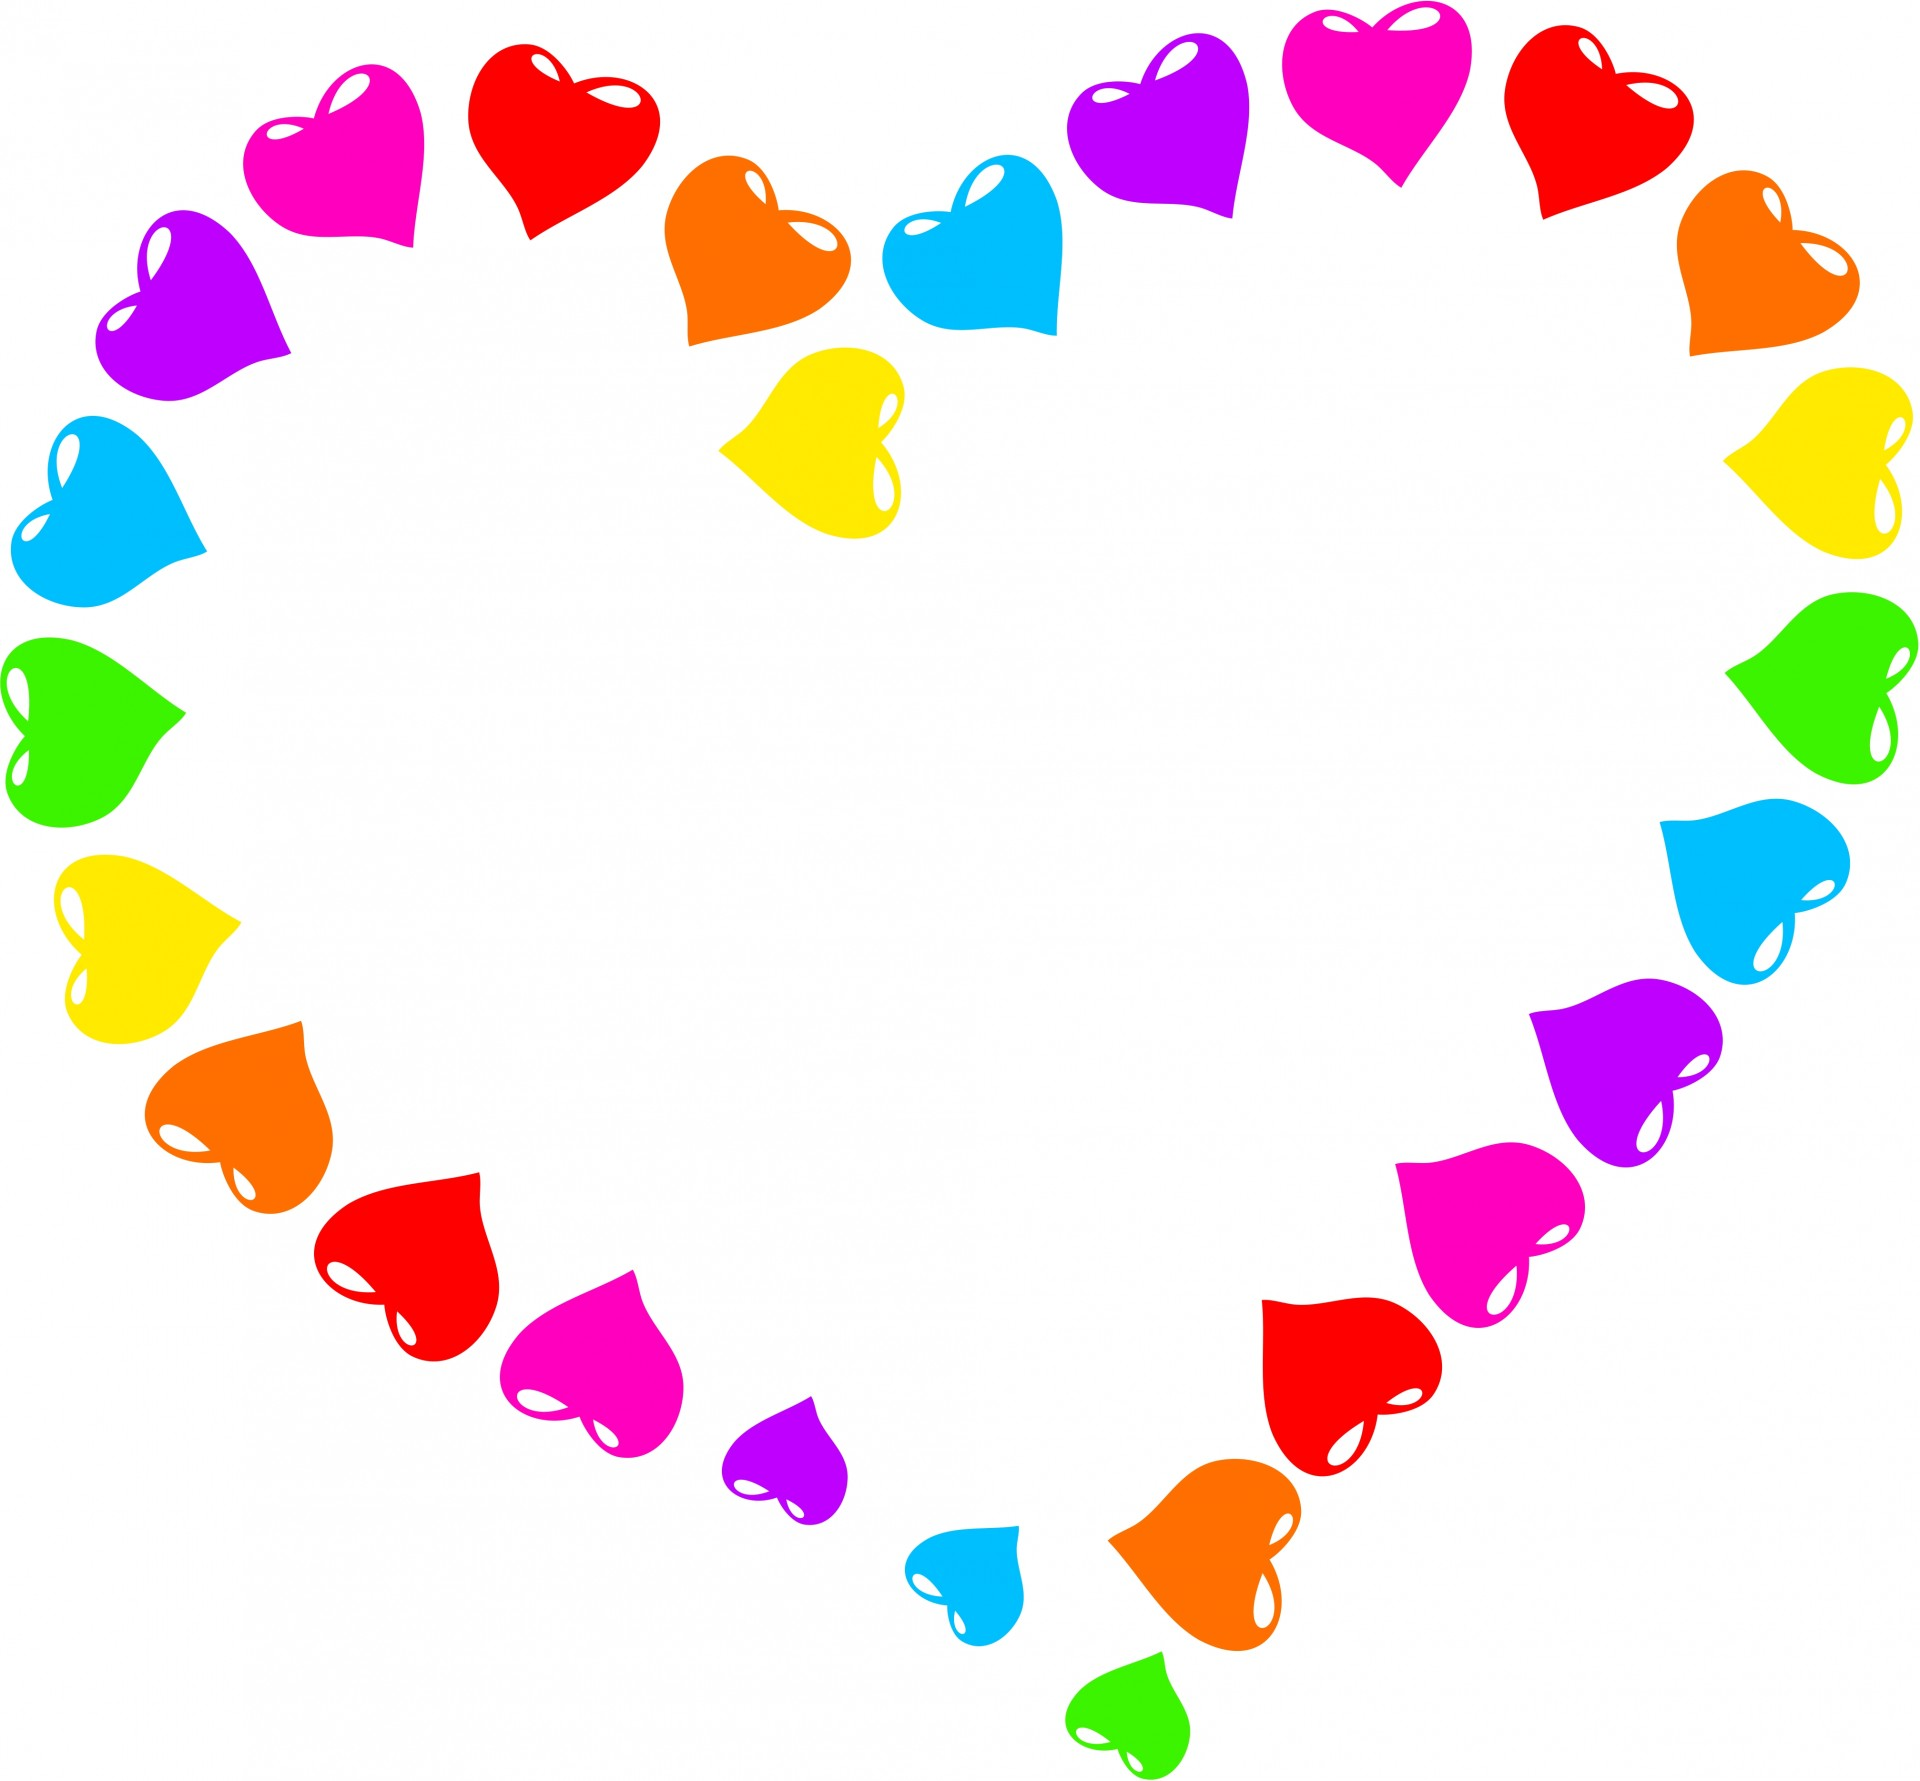 Abstract Heart Clipart at GetDrawings.com.